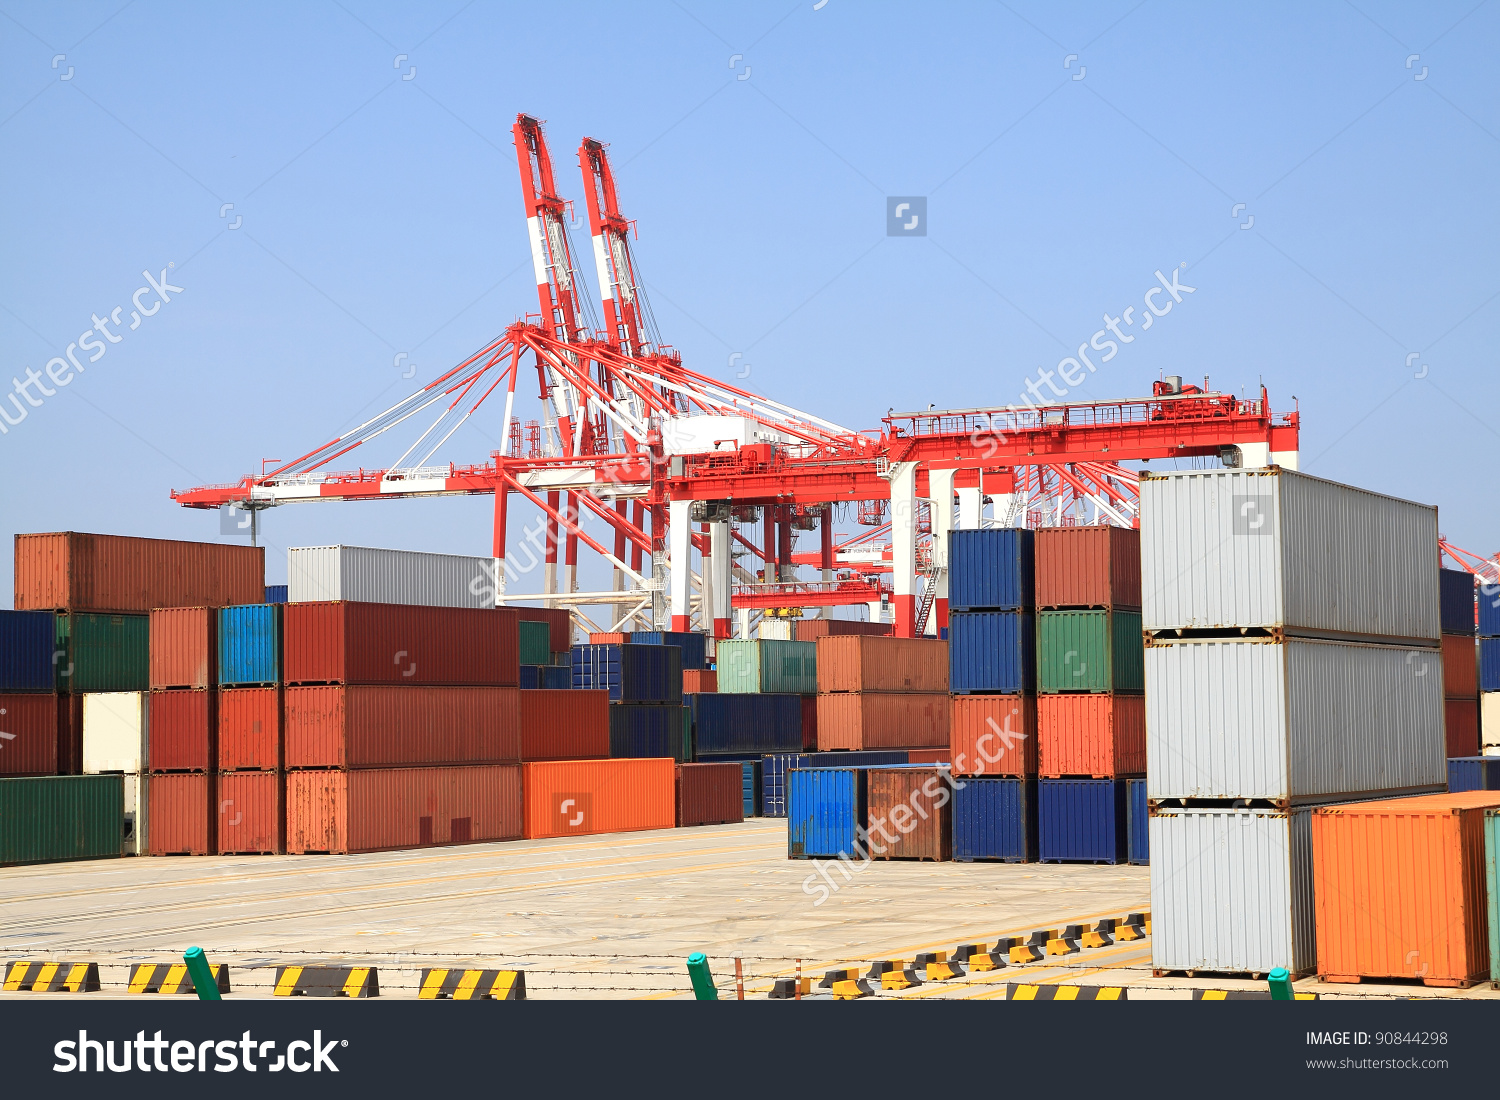 Trading Port Cranes And Container Storage Stock Photo 90844298.